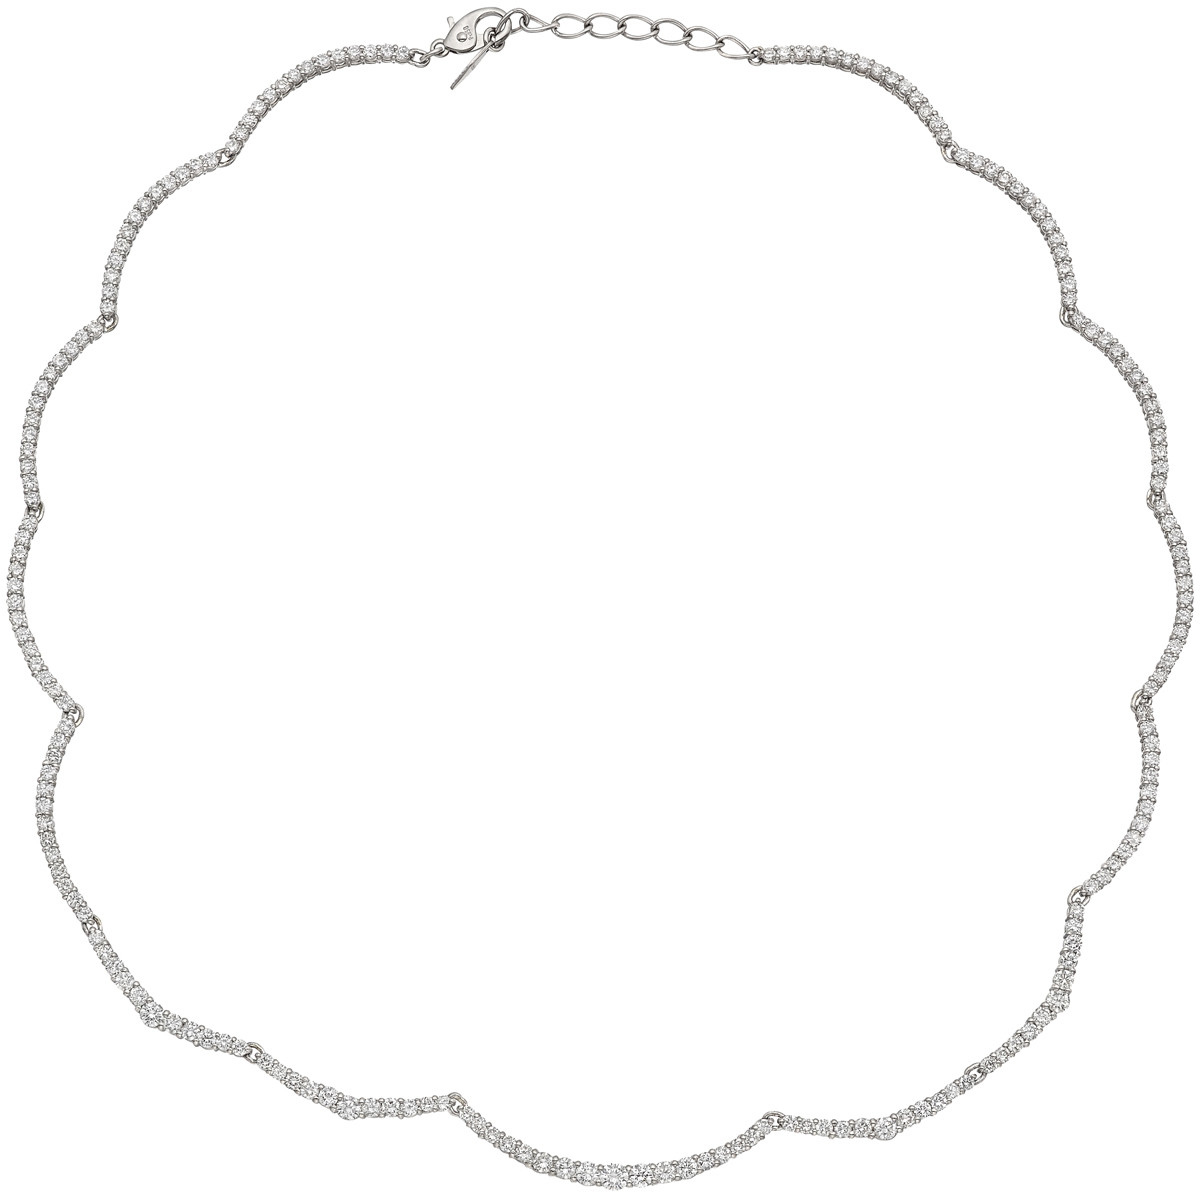 Diamond Scalloped Edge Link Necklace